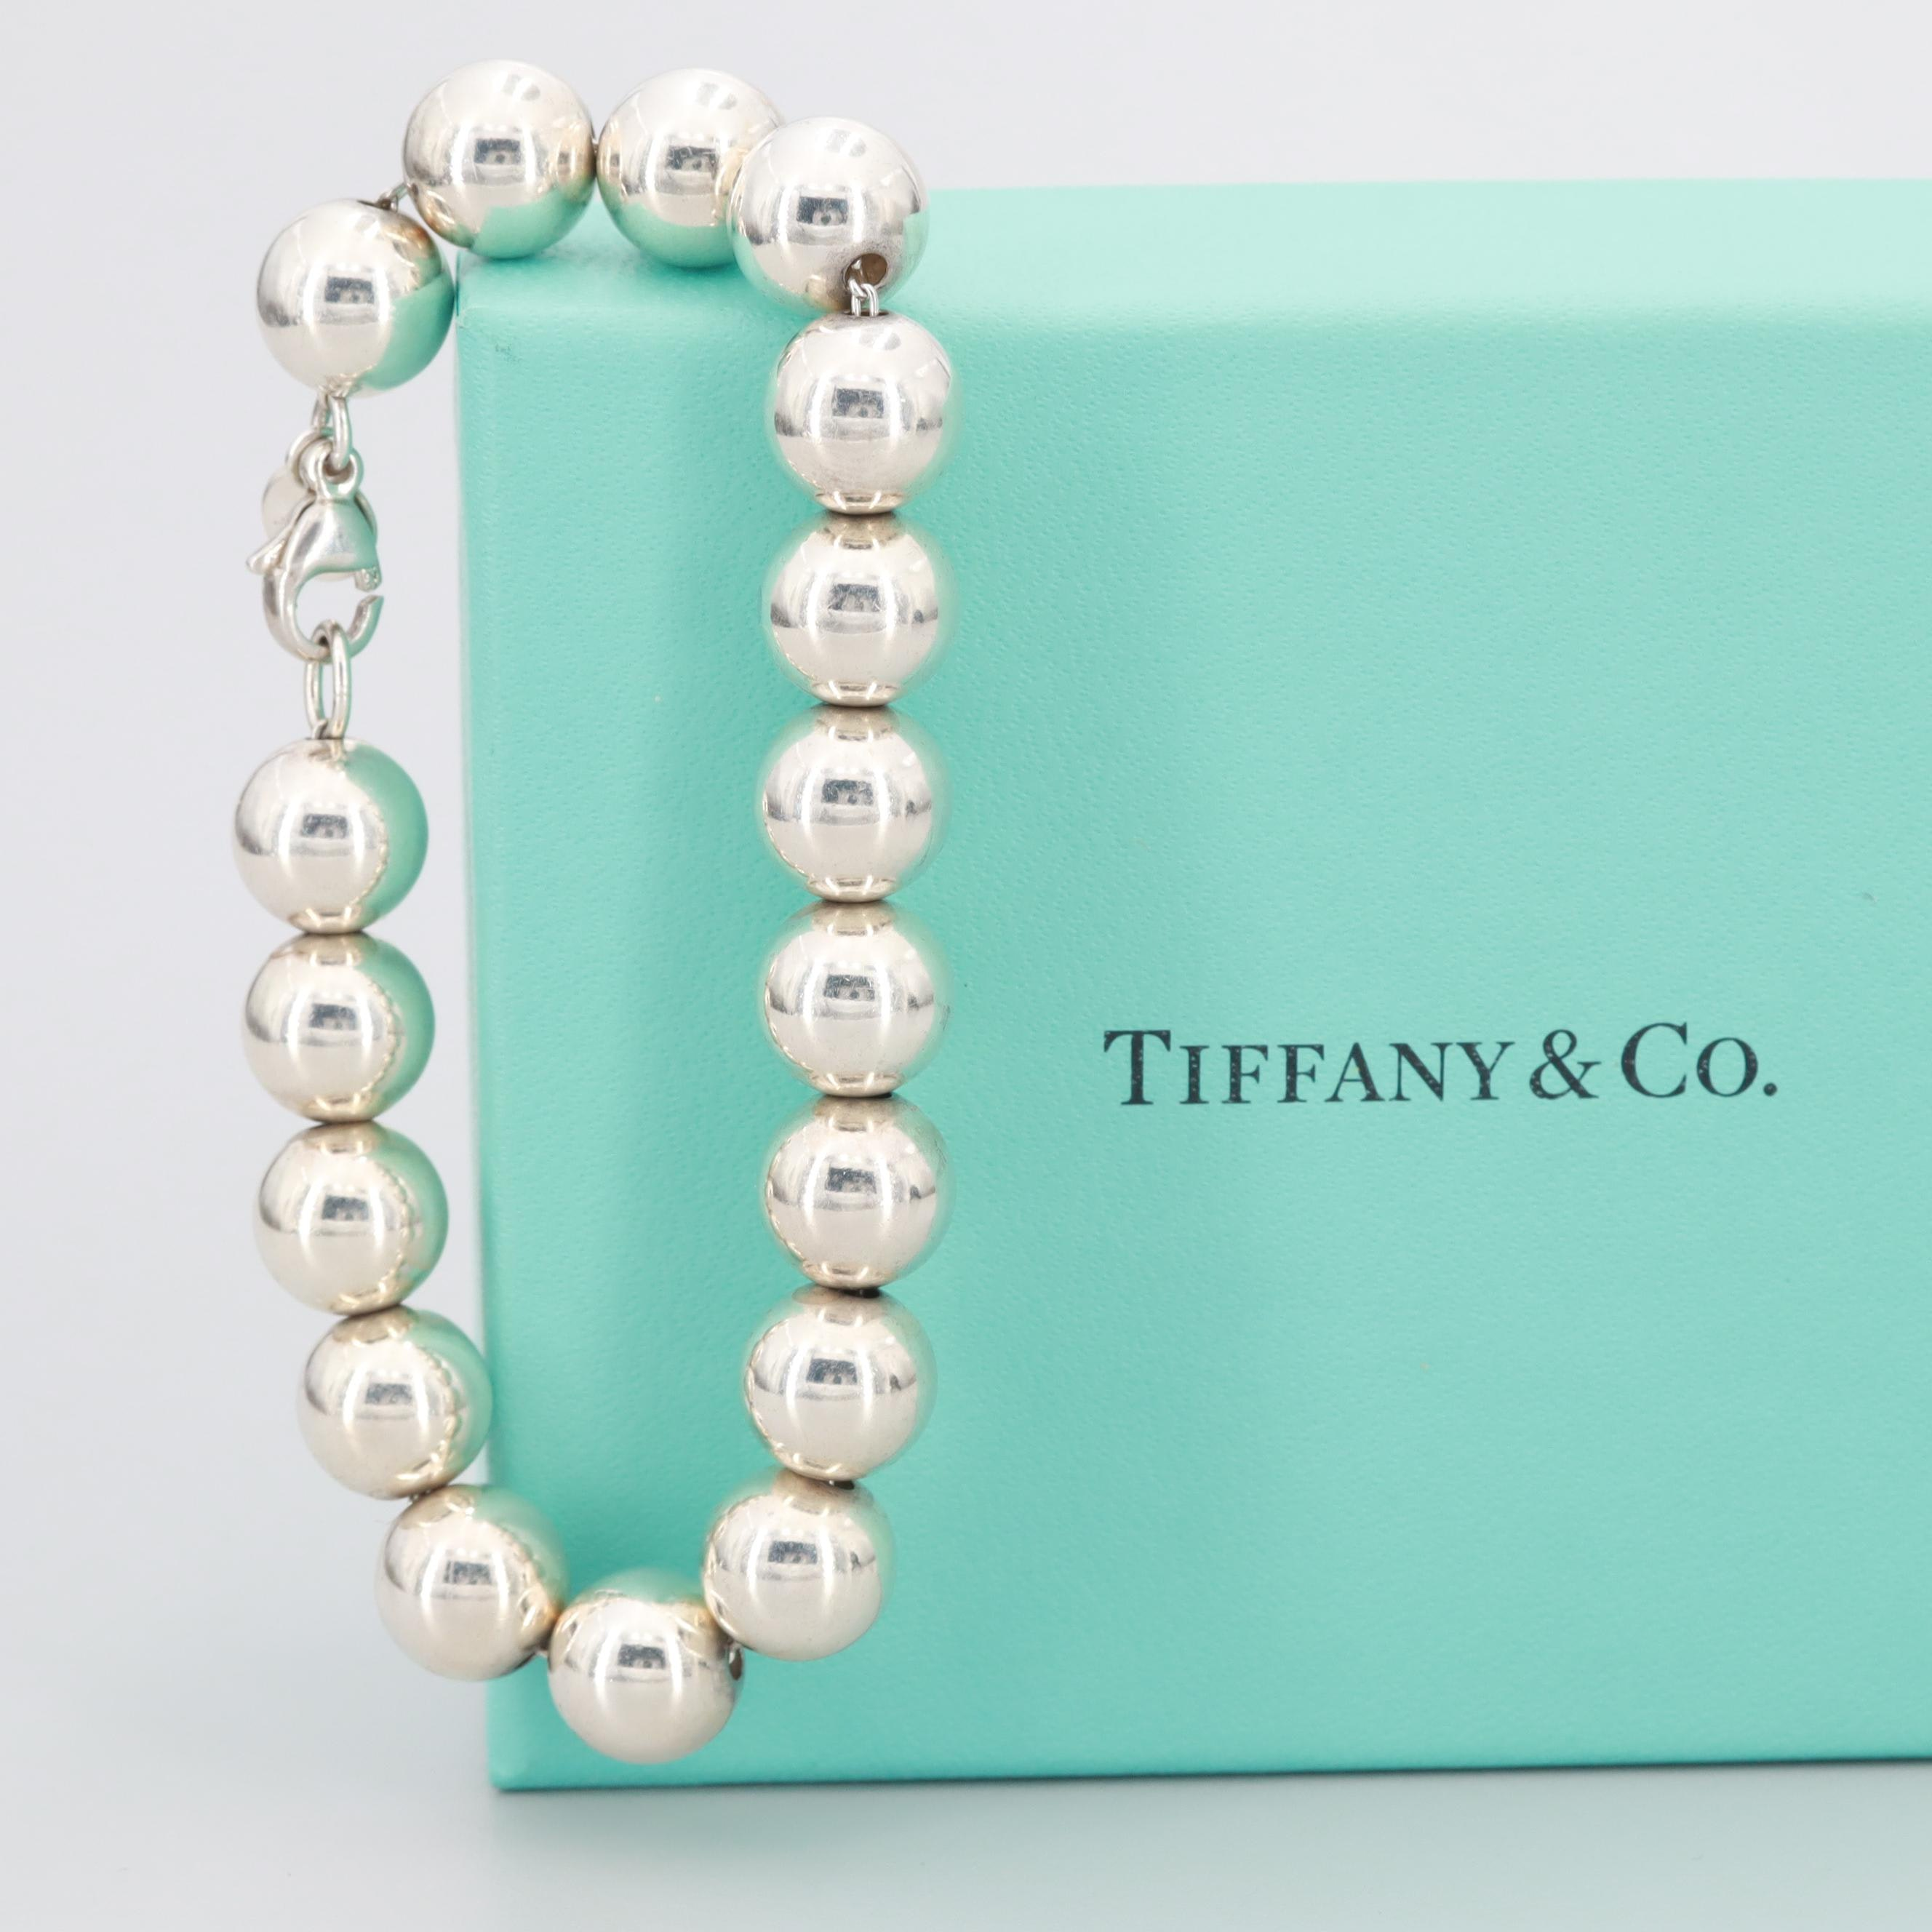 Tiffany & Co. Sterling Silver Beaded Bracelet